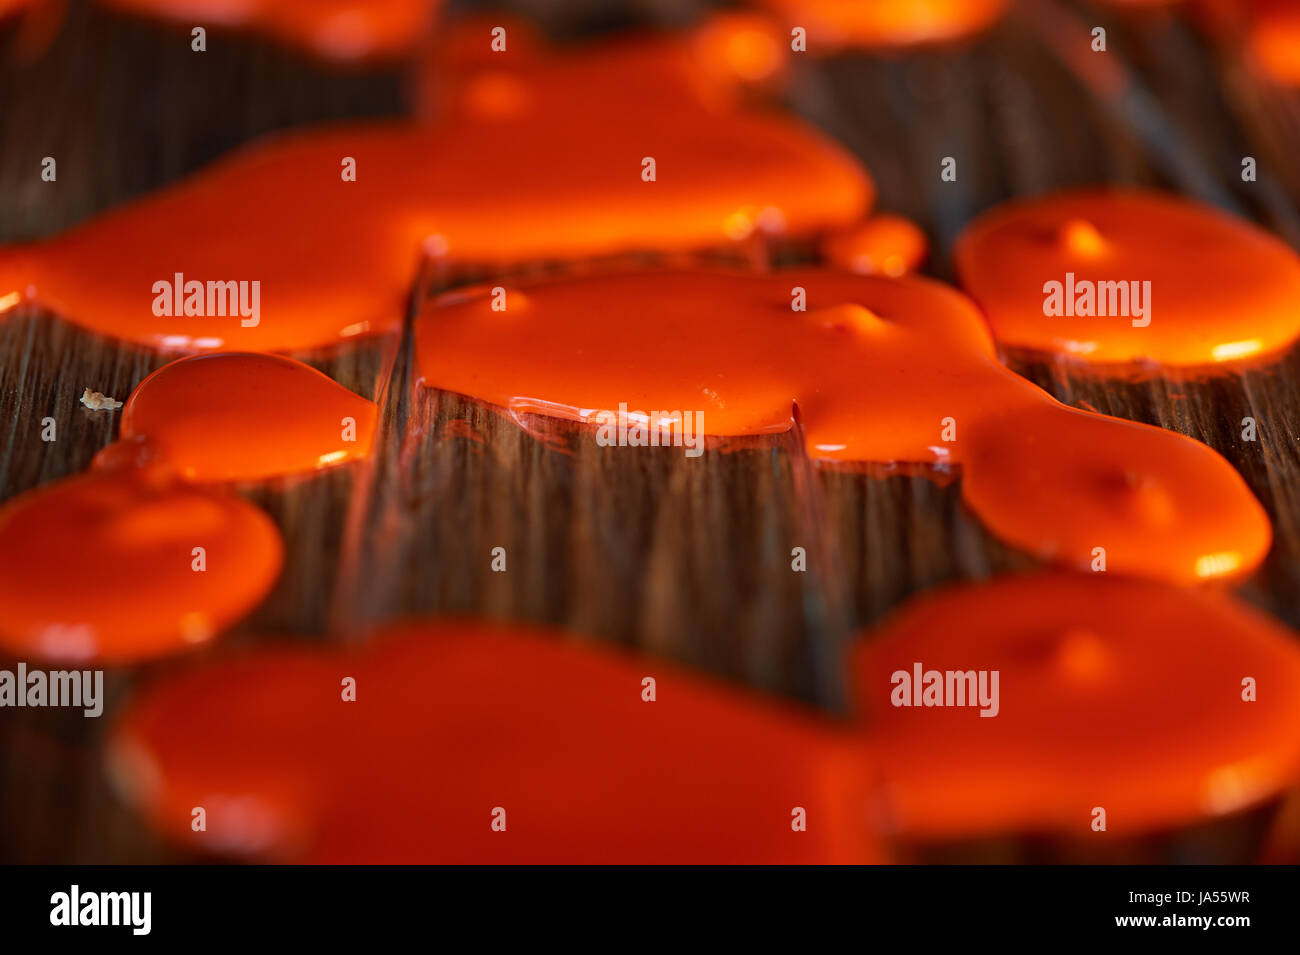 Drops frozen mirror glaze for decorating cakes and pastries.Orange food film - Stock Image